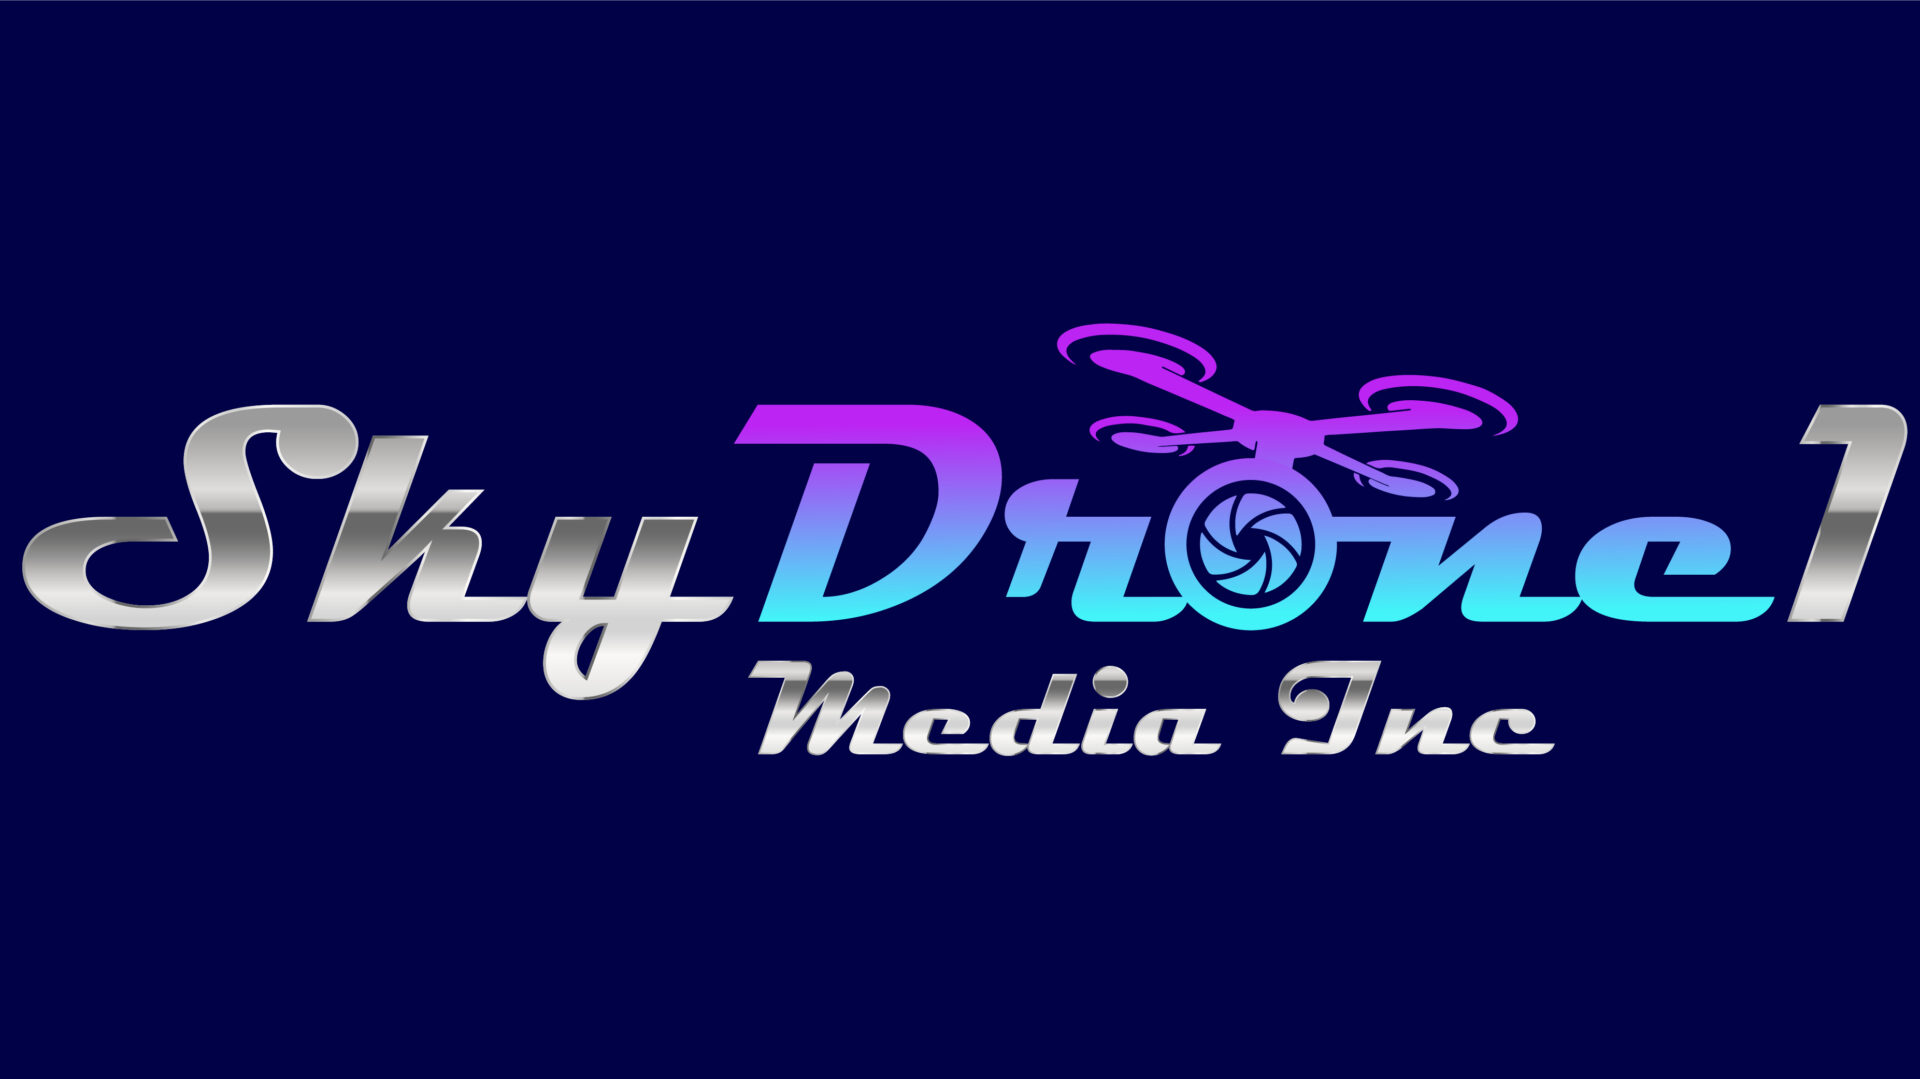 SkyDrone1 Media Inc.